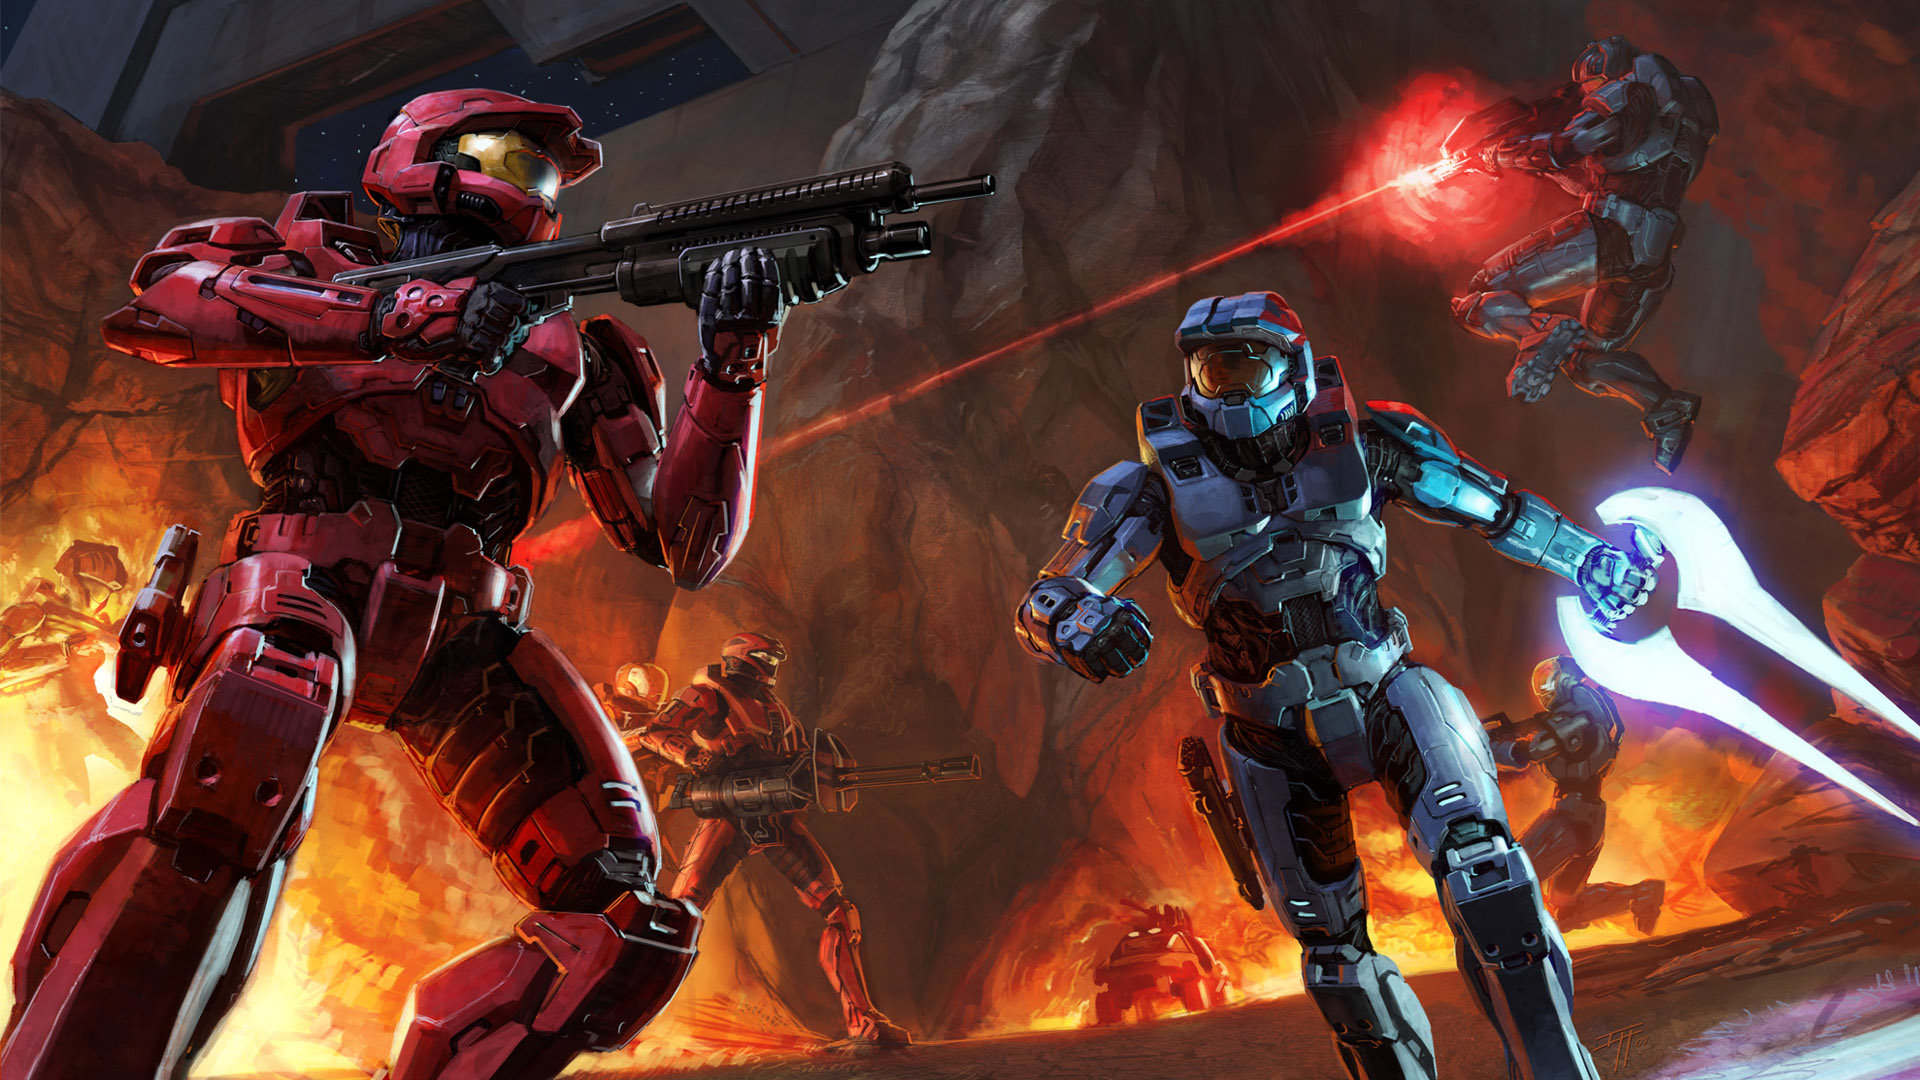 Halo 2 Wallpapers Hd For Desktop Backgrounds